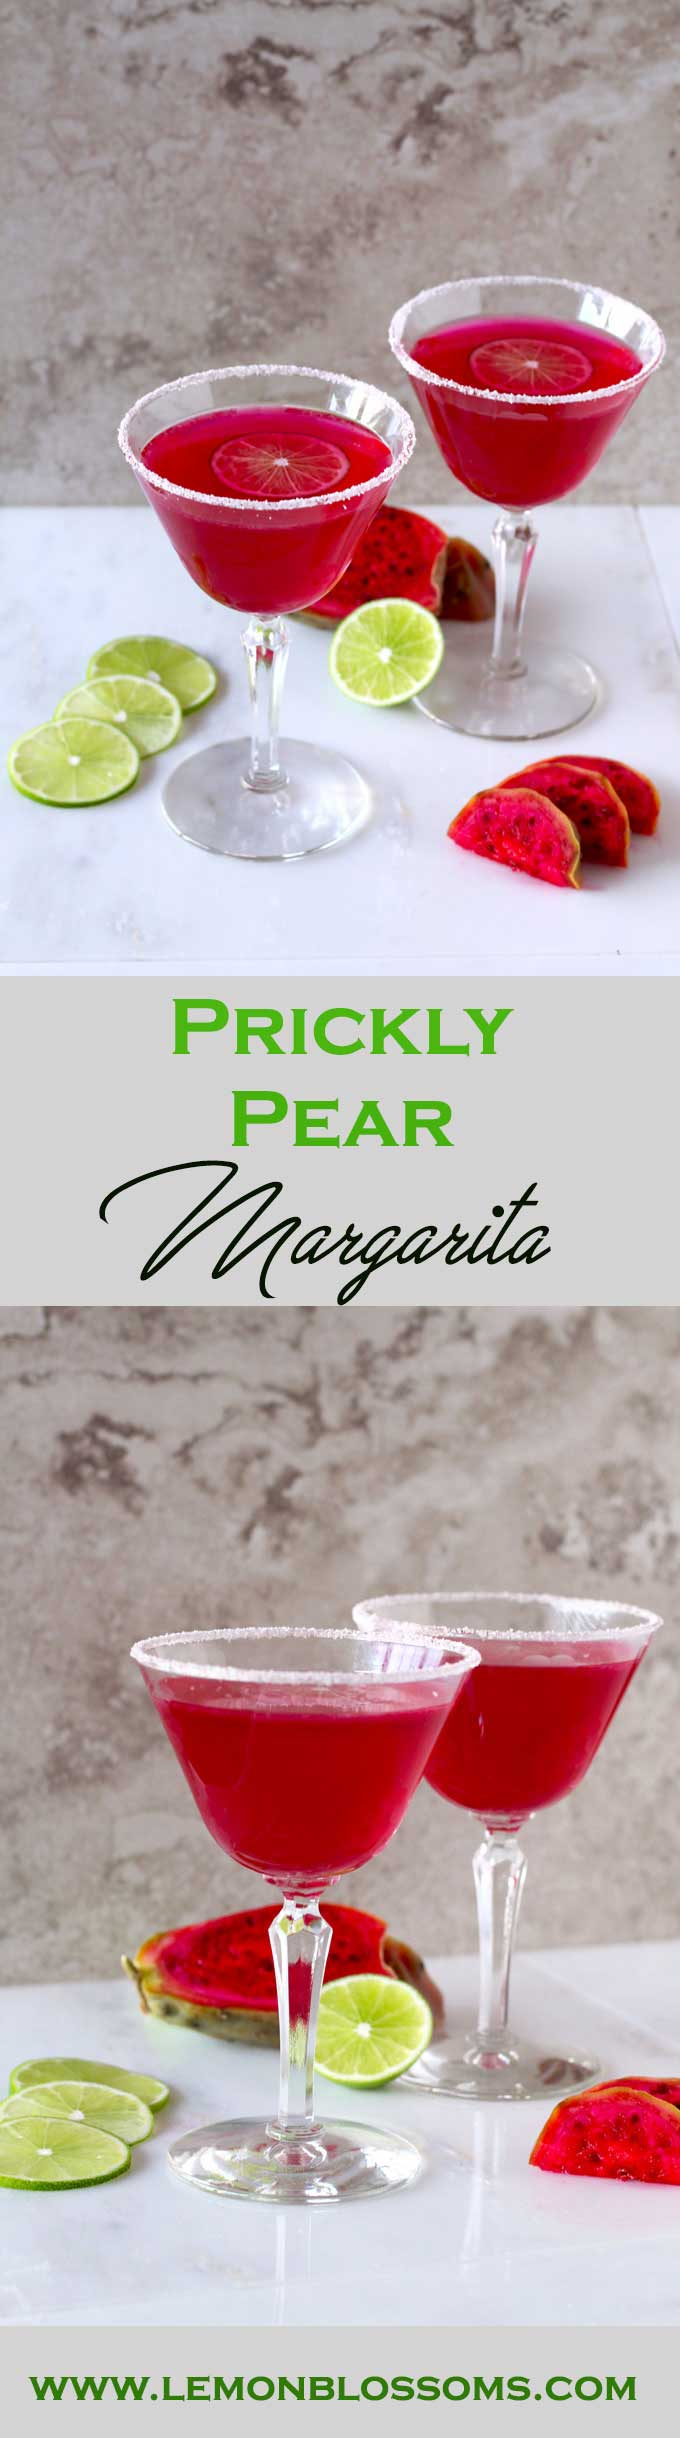 Hot pink and beautiful. This Prickly Pear Margarita is easy to make and super tasty!